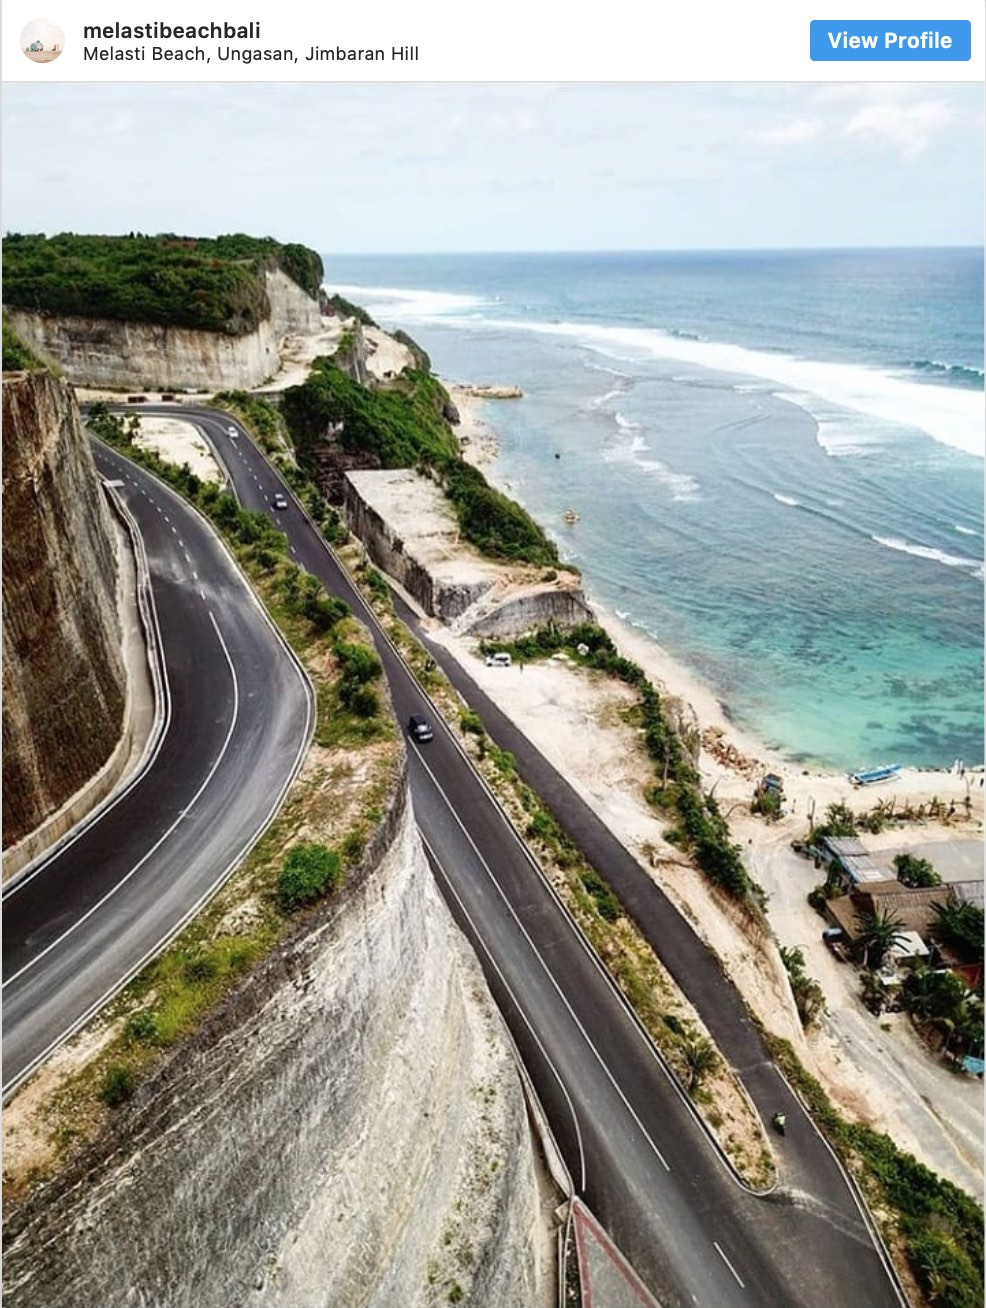 Instagram Spots High Cliff Melasti Beach Bali - Destination Deluxe